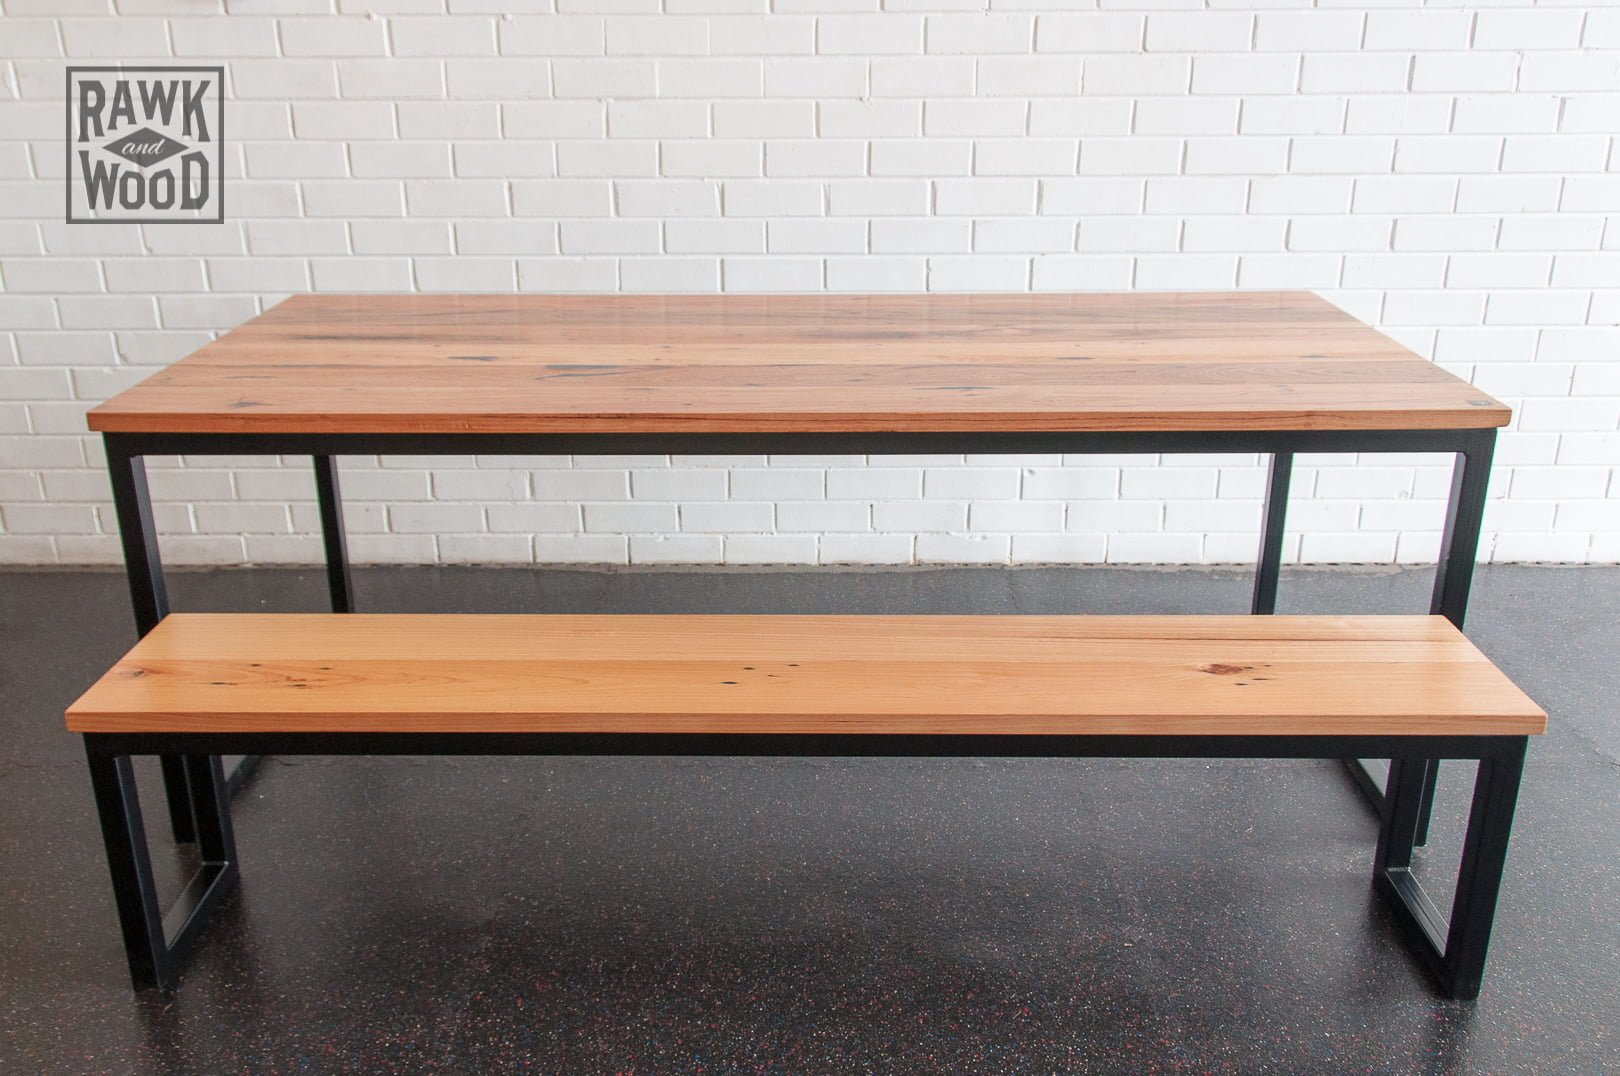 Recycled-Timber-Dining-Setting, made in Melbourne by Rawk and Wood